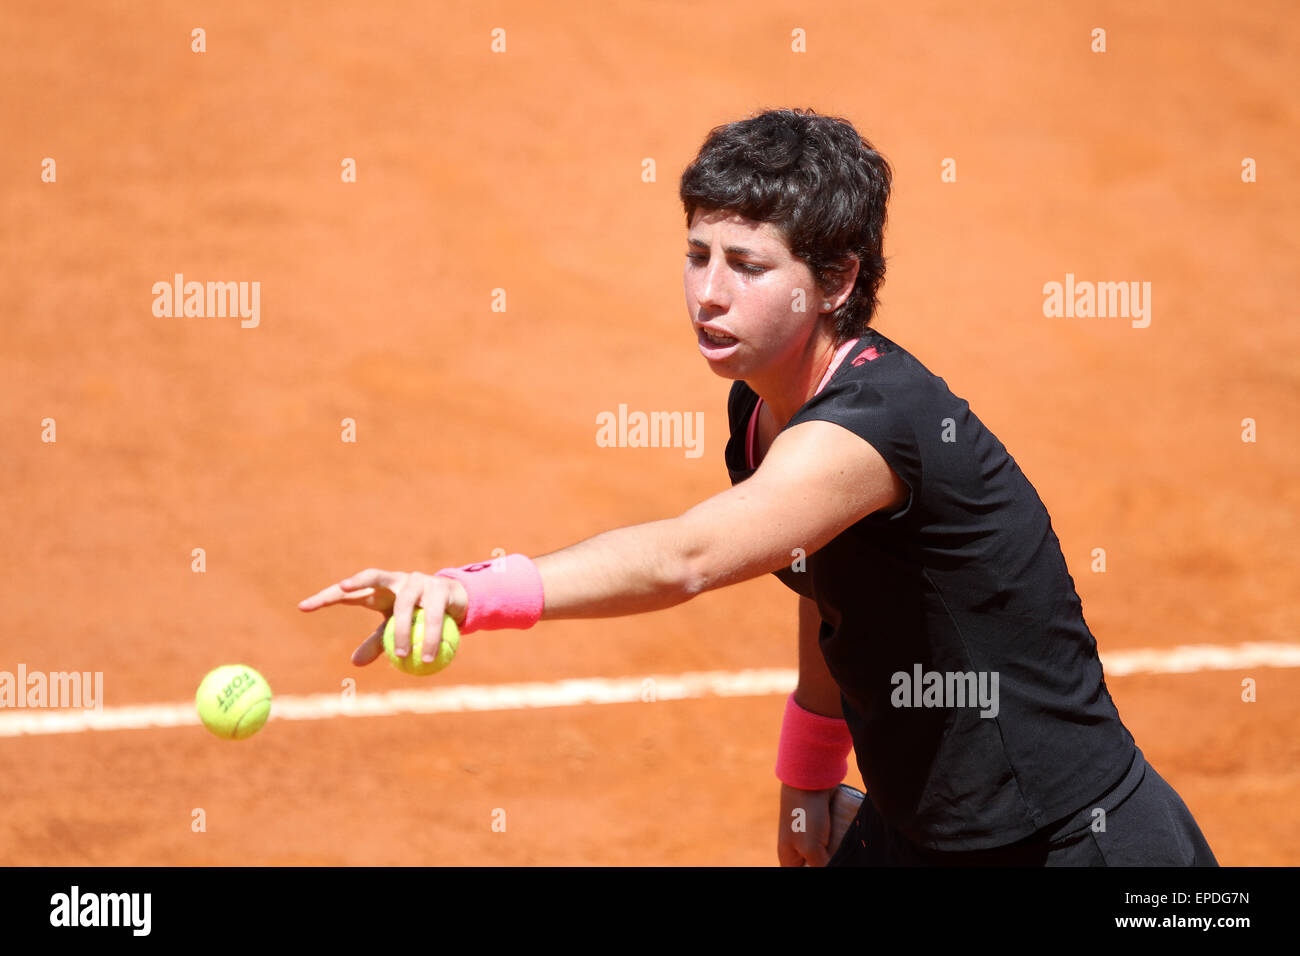 Rome, Italy. 17th May, 2015. Carla Suarez Navarro of Spain eyes the ball during the singles final match against - Stock Image